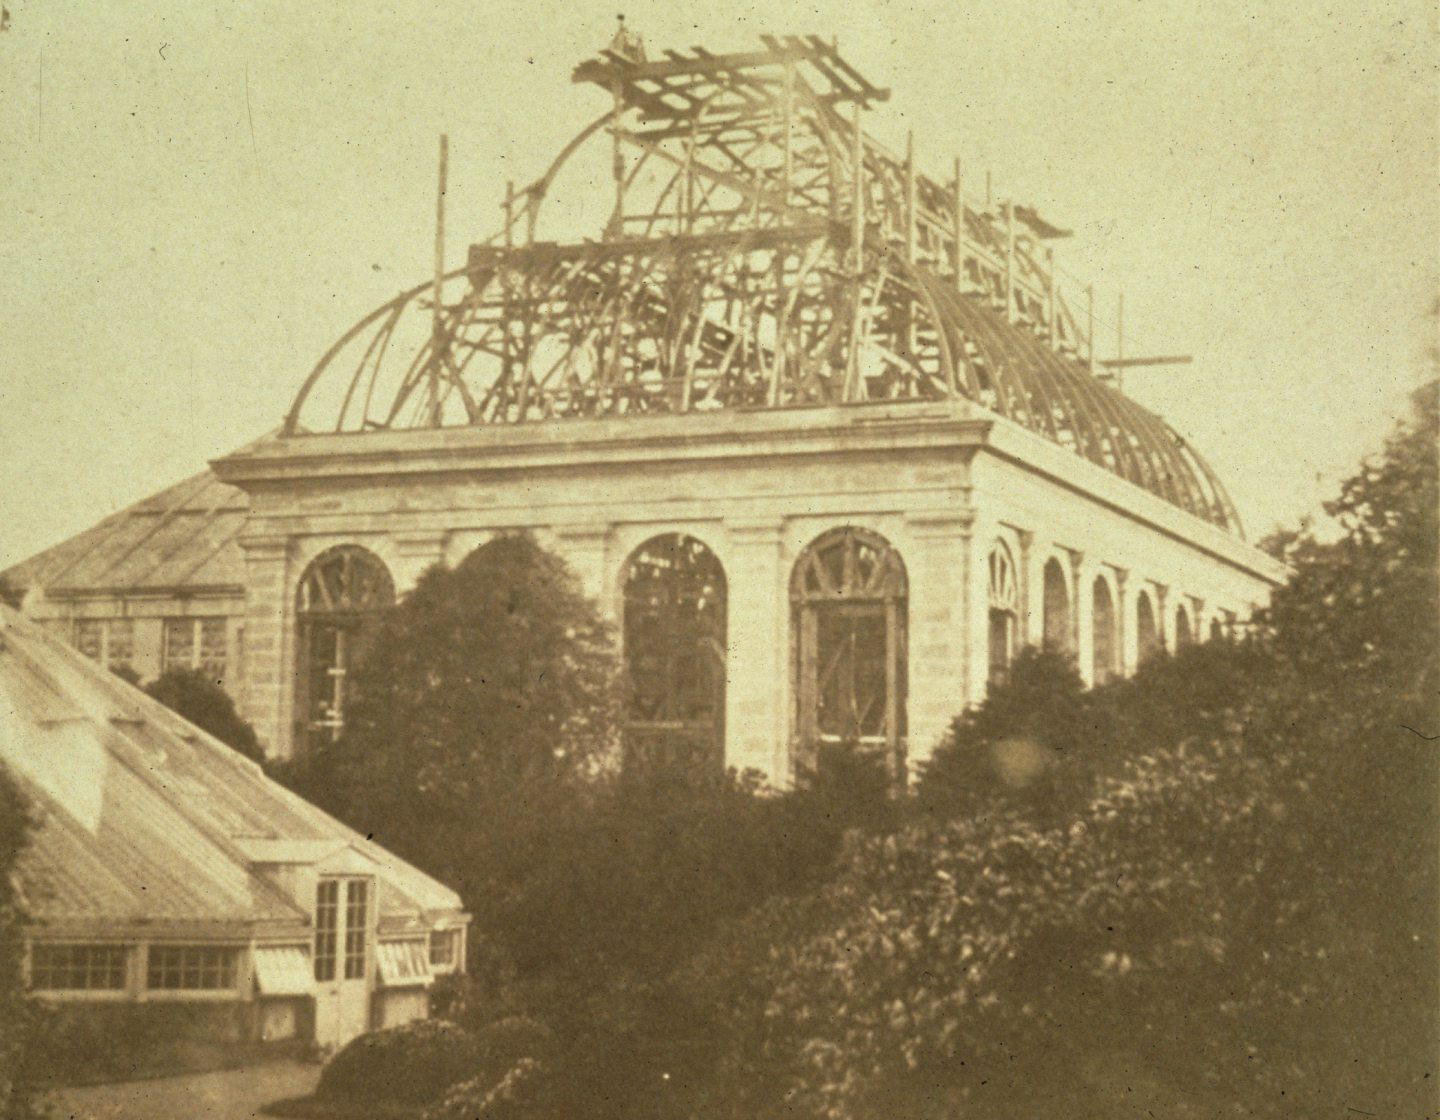 Temperate Palm House under construction in the 1850s